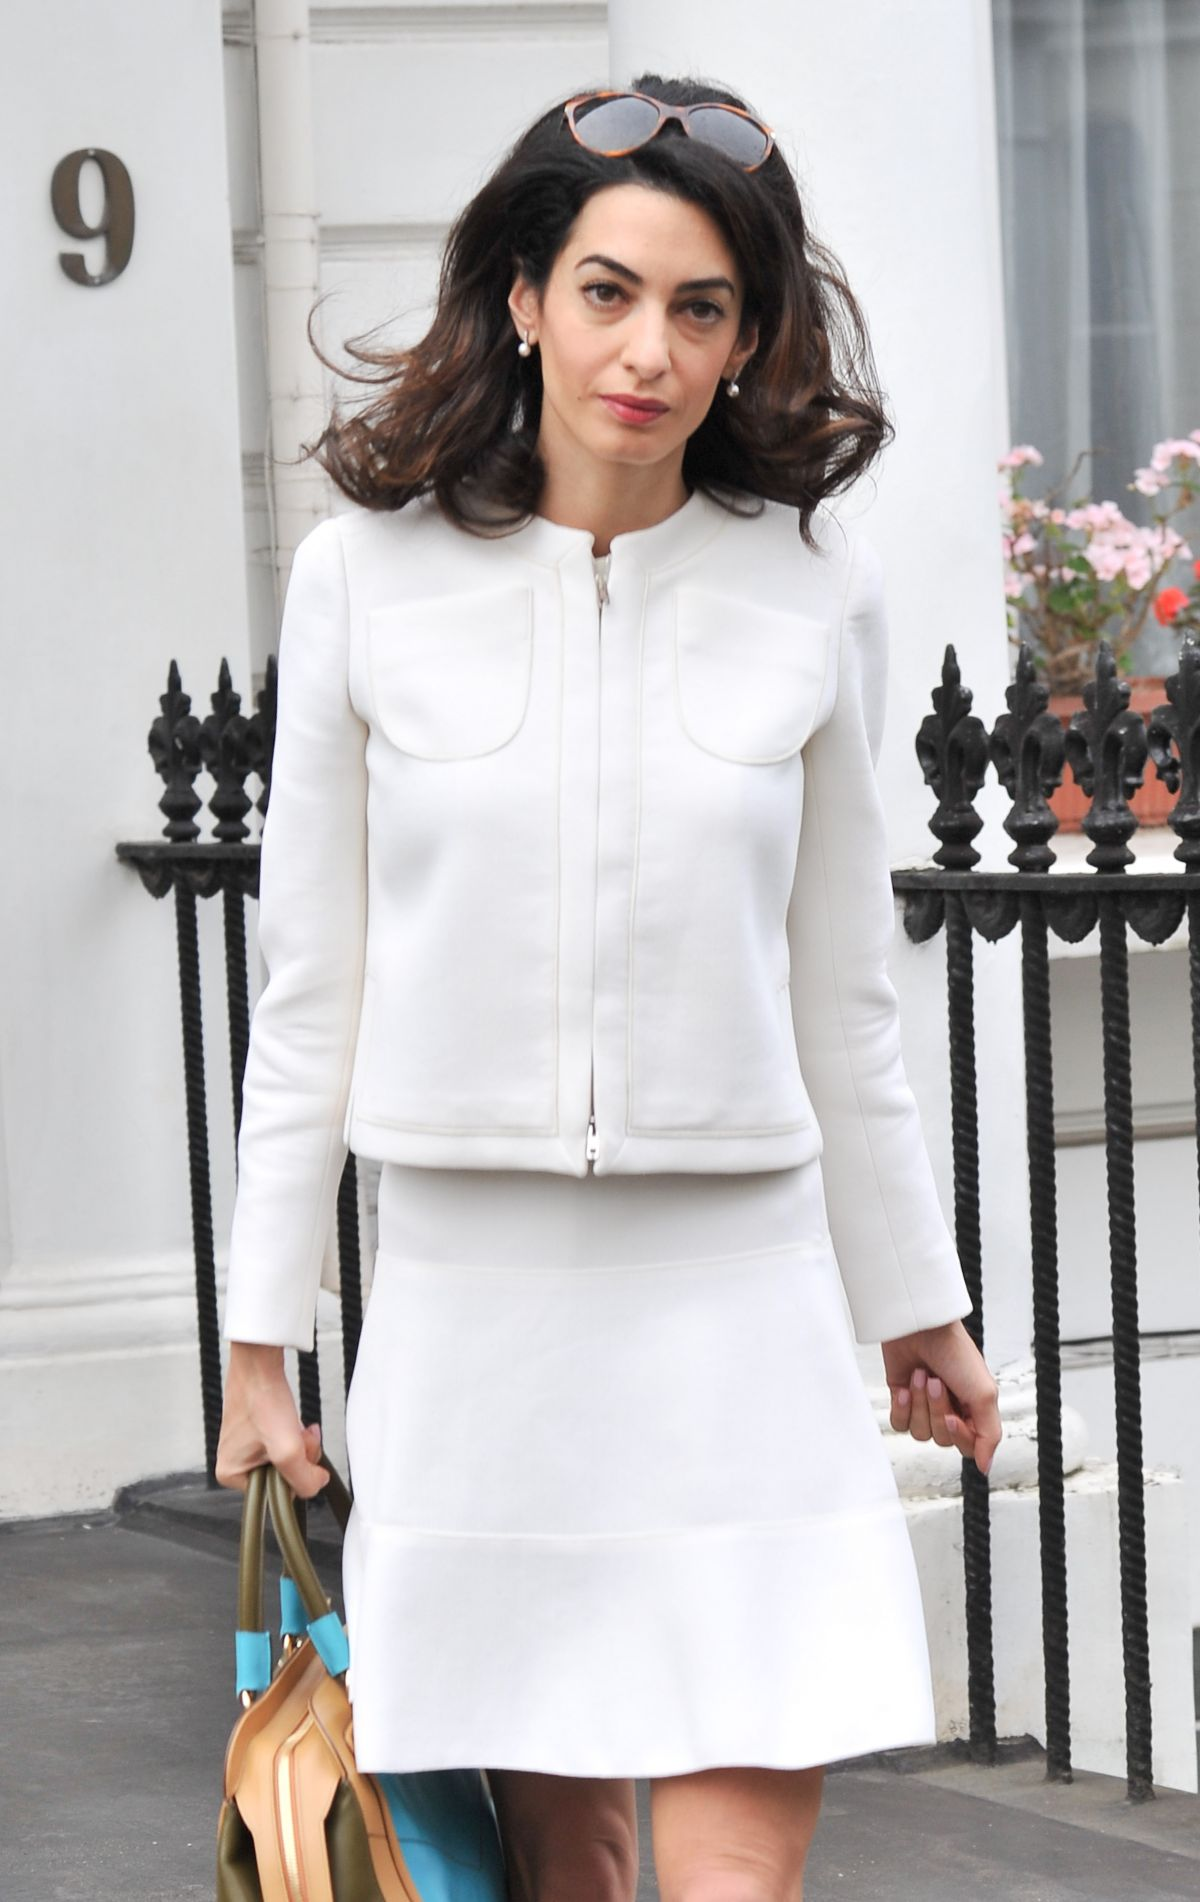 AMAL CLOONEY Out and About in London 06/24/2015